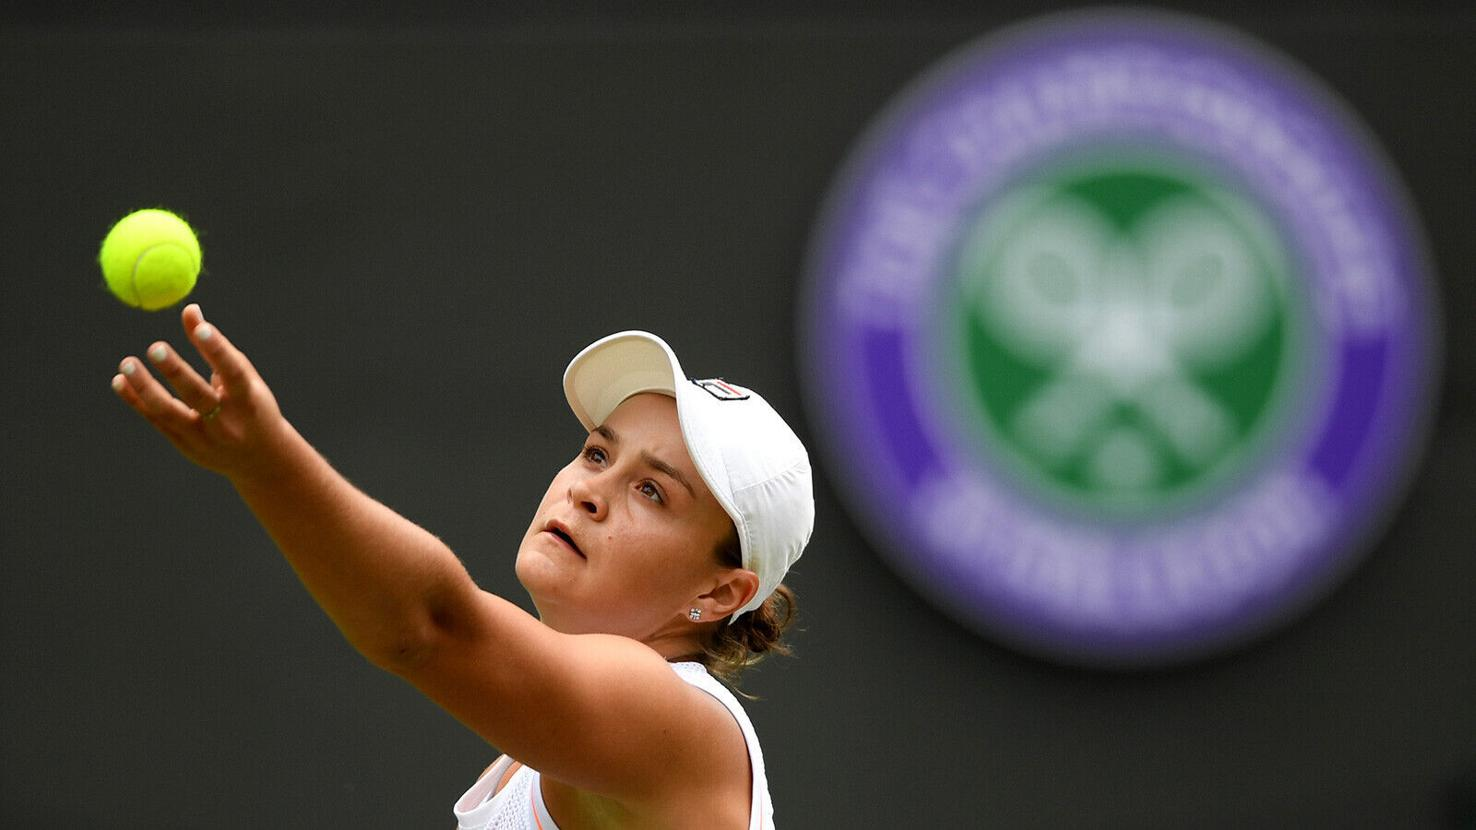 Ashleigh Barty will be looking to claim her second grand slam title.